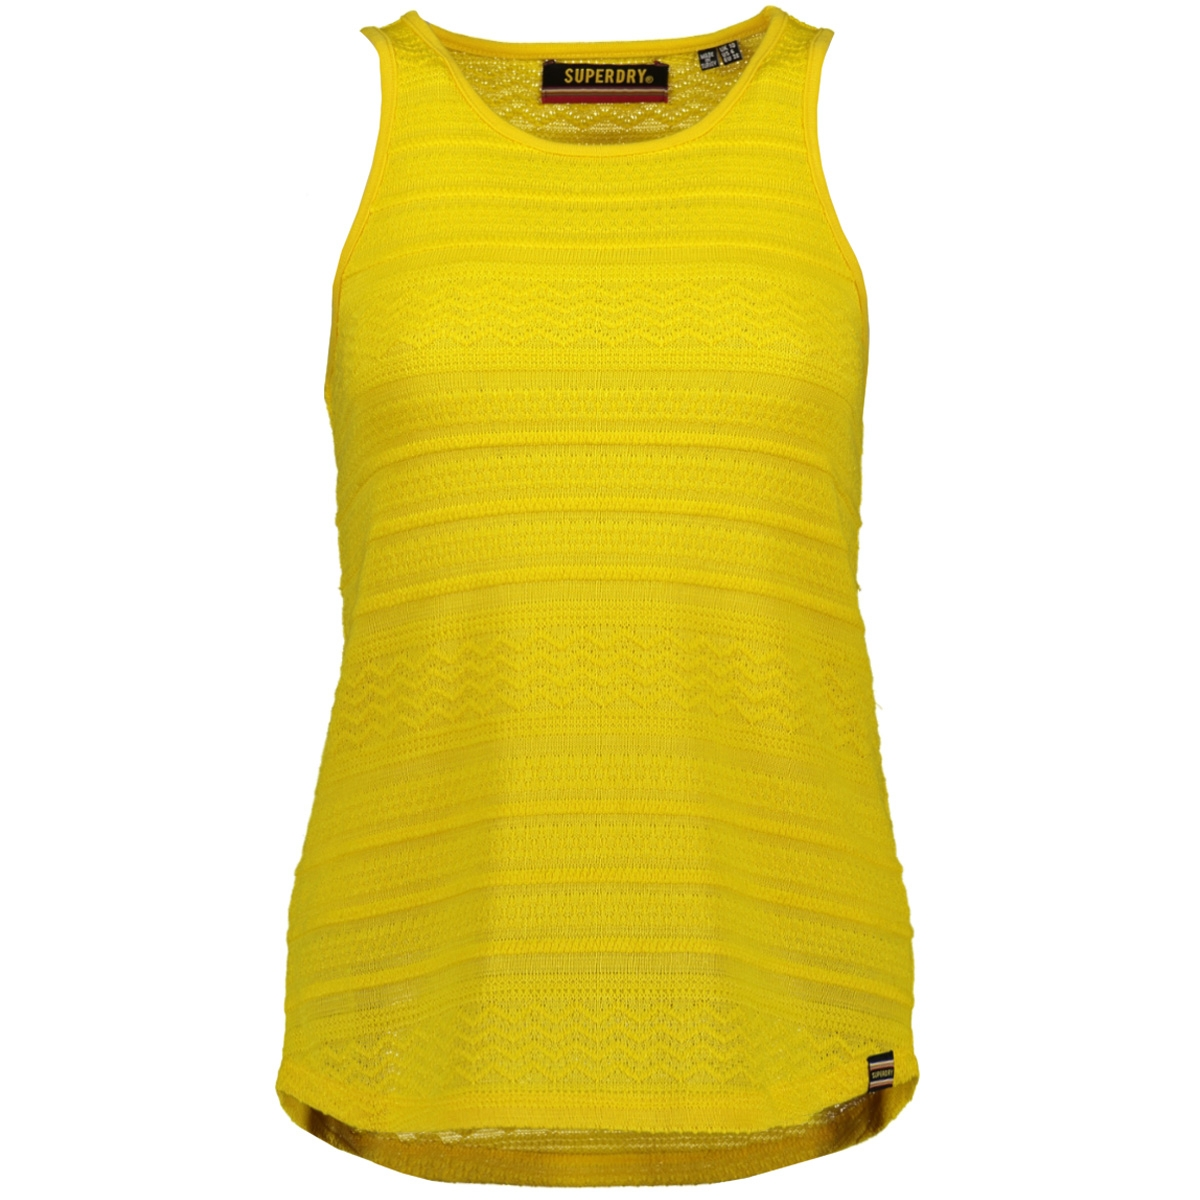 leya textured vest g60802su superdry top vibrant yellow